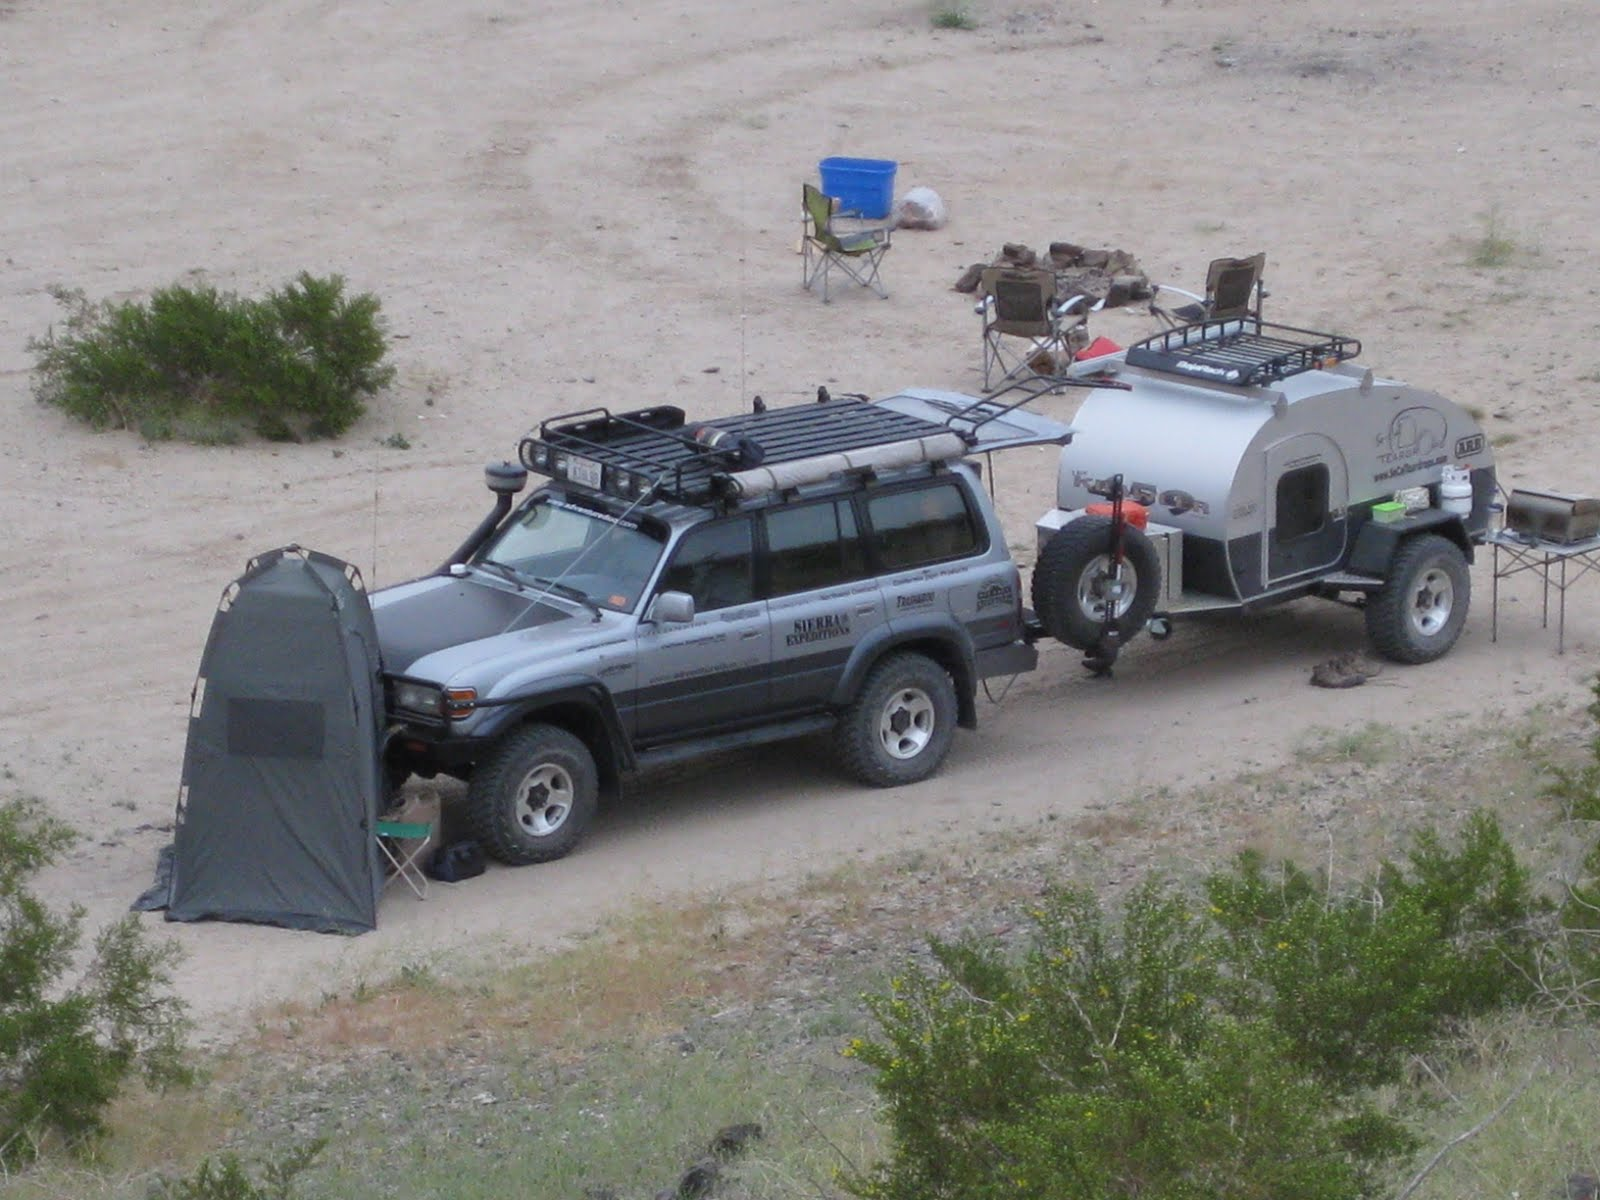 Off Road Teardrop Trailer Plans http://suntothenorth.blogspot.com/2011_05_01_archive.html